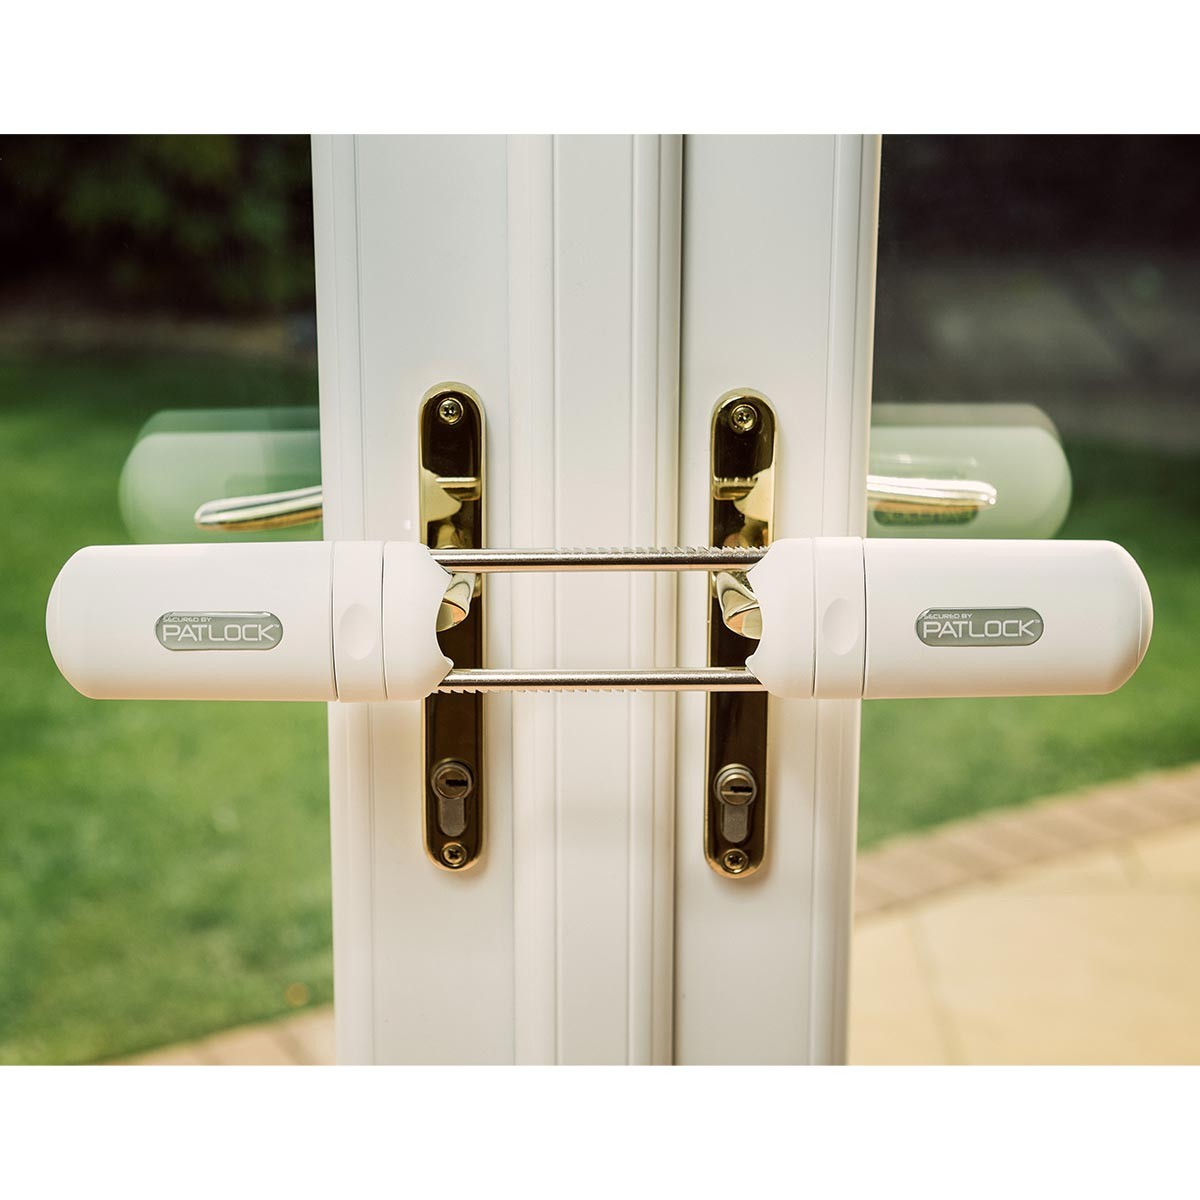 Patlock - robust security for patio doors